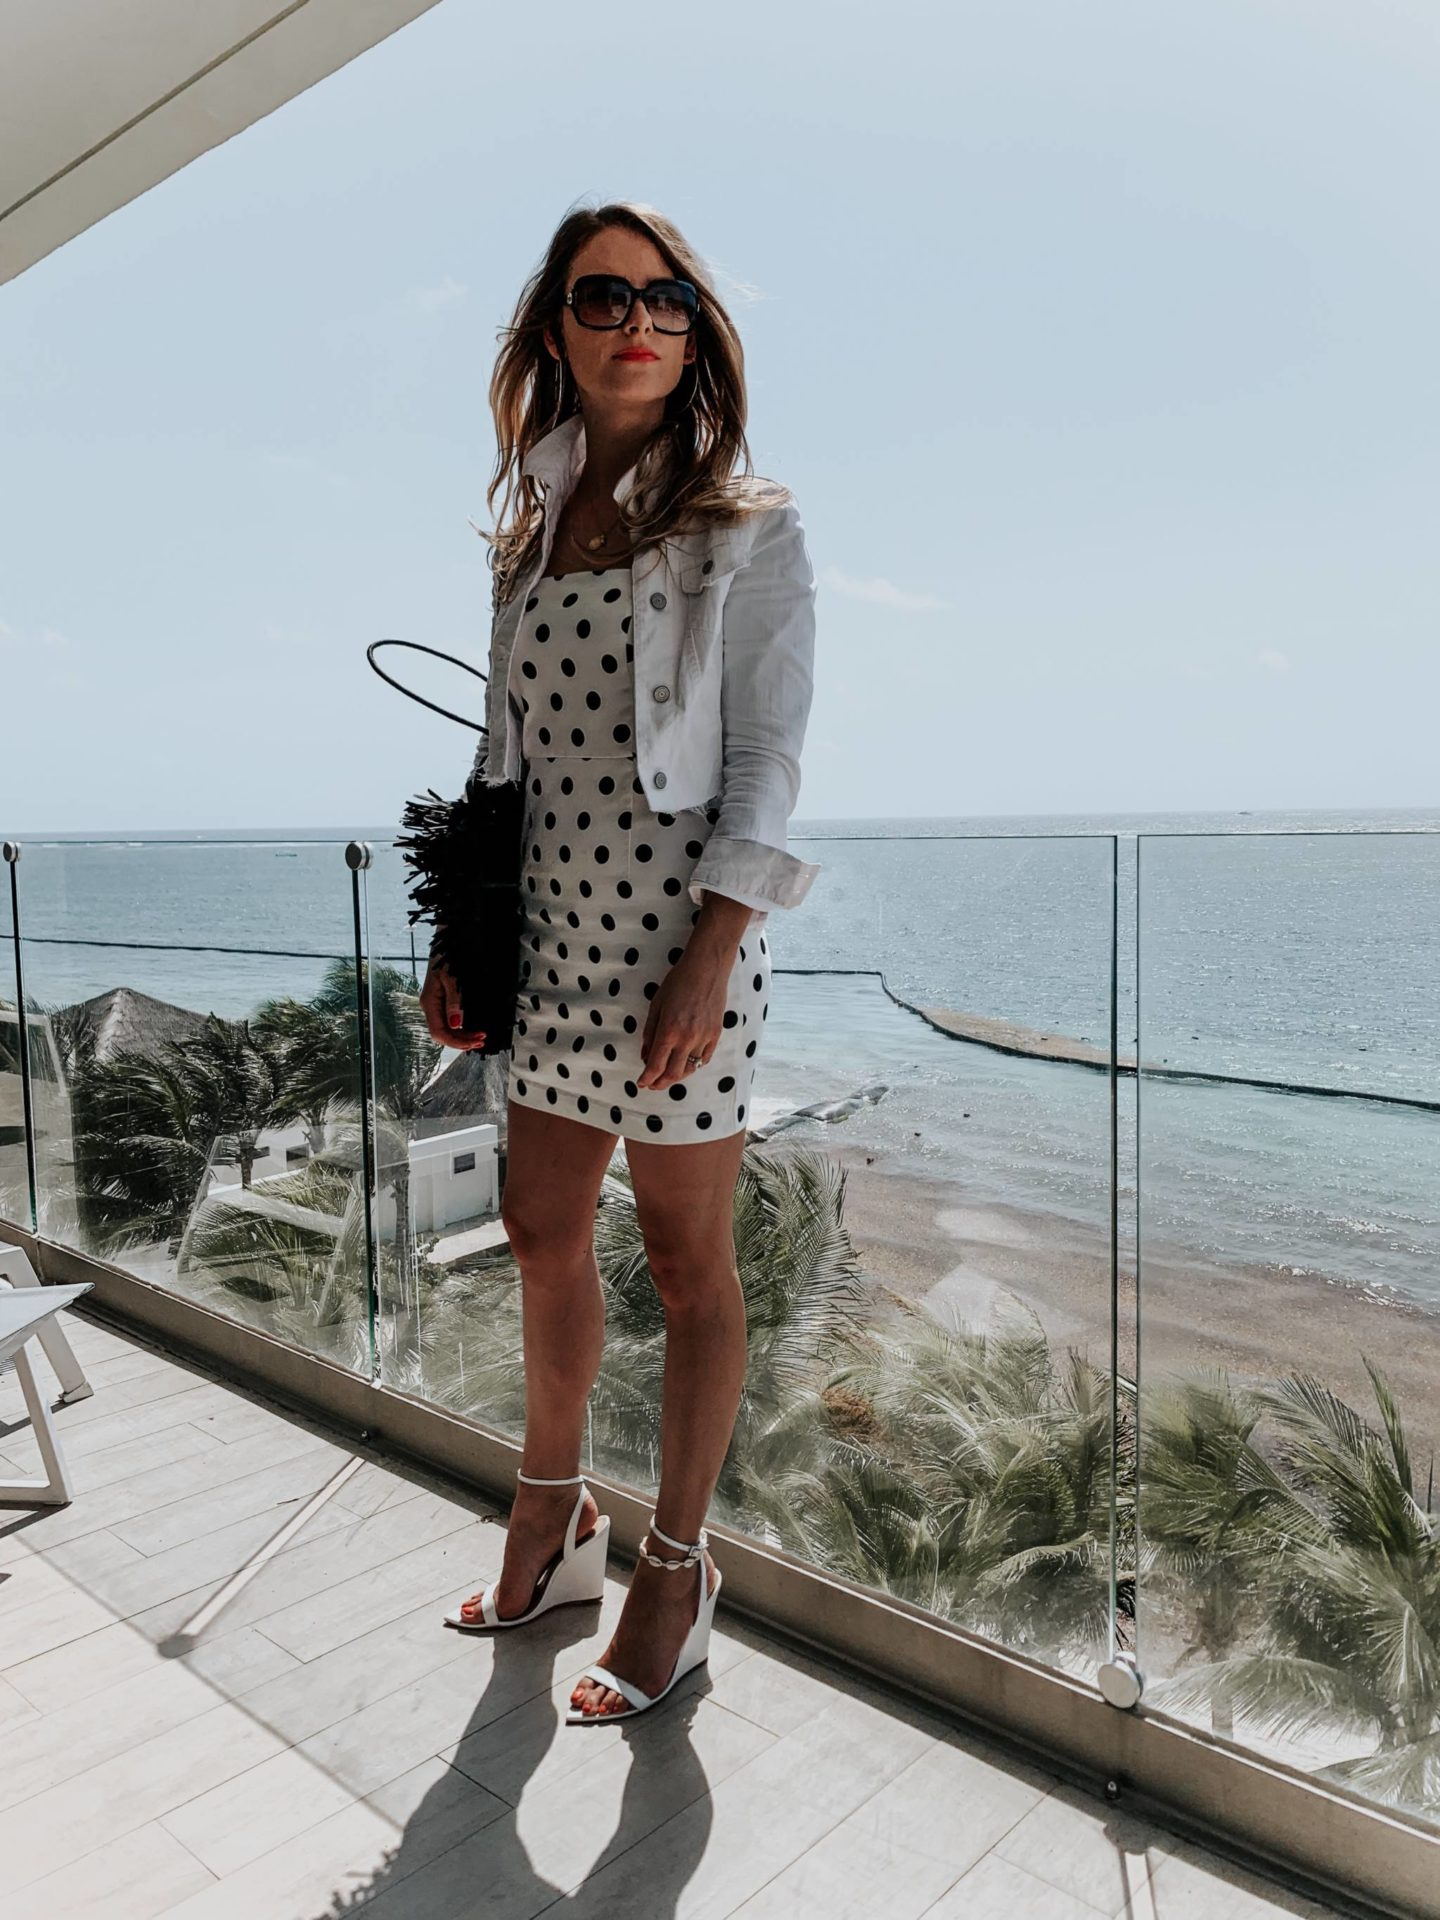 8a591a91ed3 O U T F I T D E T A I L S : POLKA DOT DRESS (AMERICAN VERSION, LOVE THIS  ONE, ANOTHER CUTE OPTION) | DIY CROPPED DENIM JACKET (LOVE THIS ONE) | H&M  EARRINGS ...